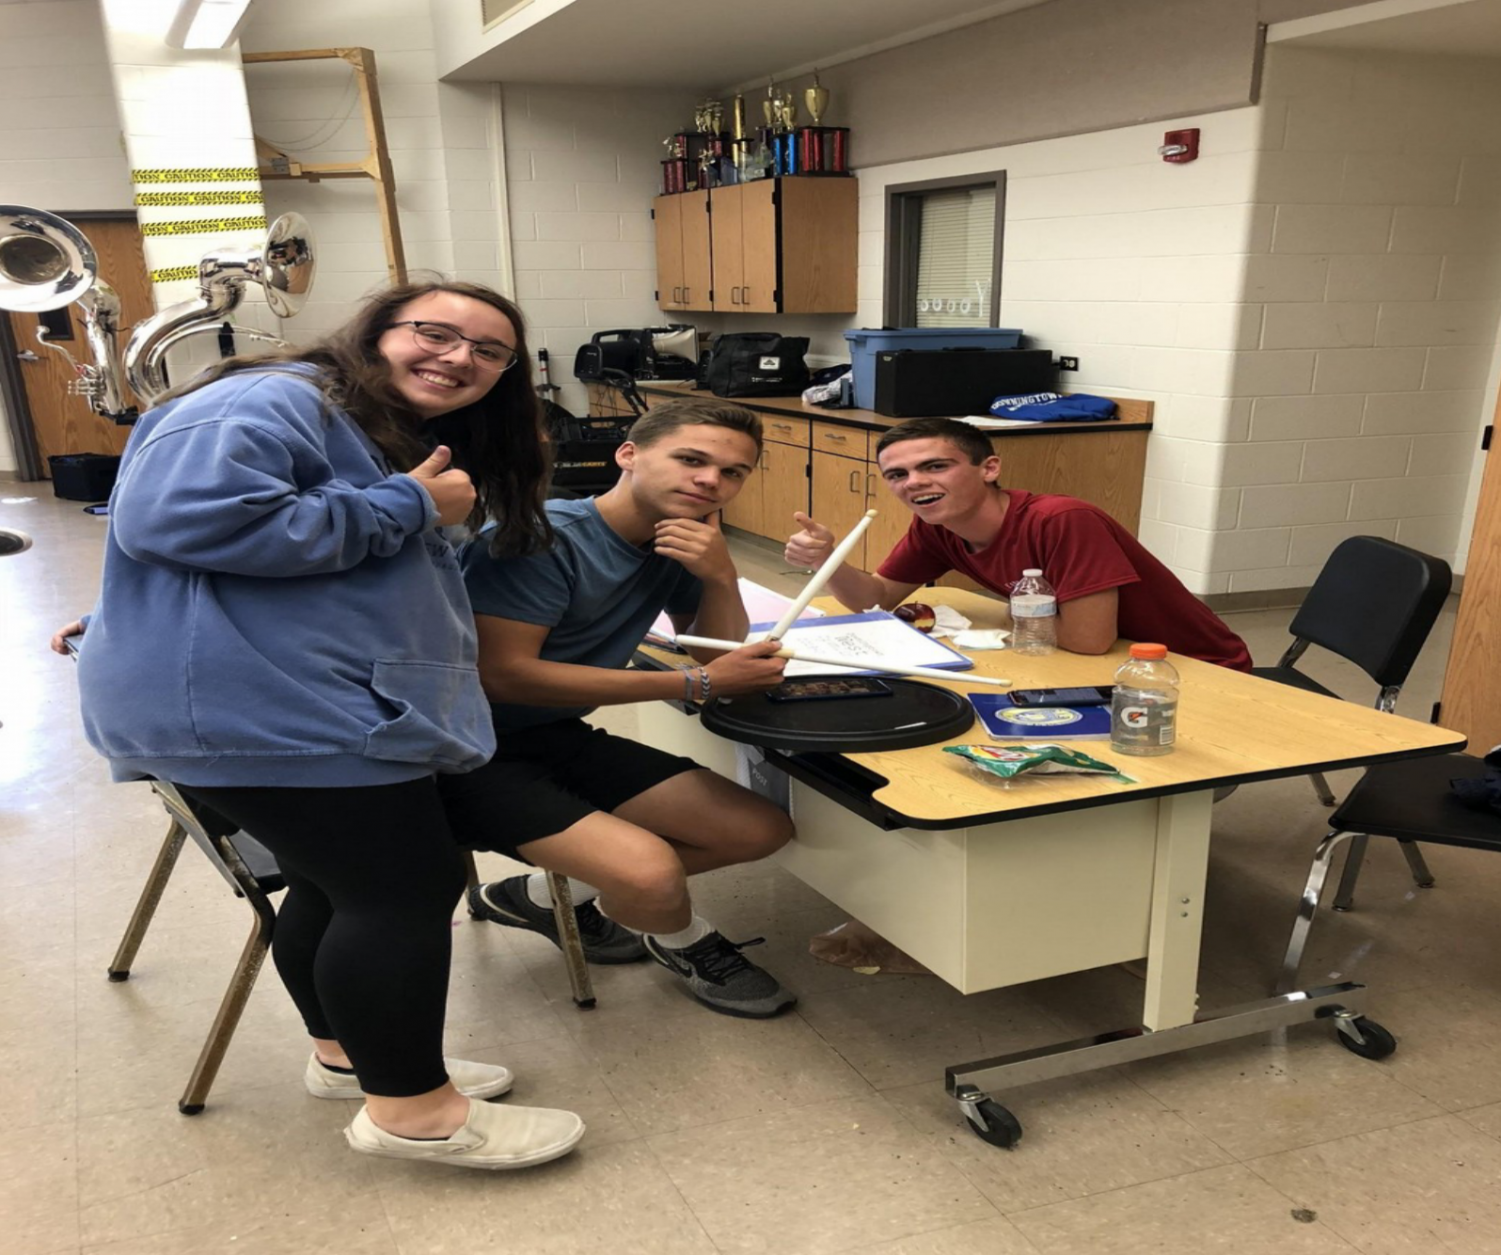 So dedicated! Alexandra Mayer ('20), Brenden Mascherino ('20), and Stephan Burns ('20) put in study and practice time in the bandroom.